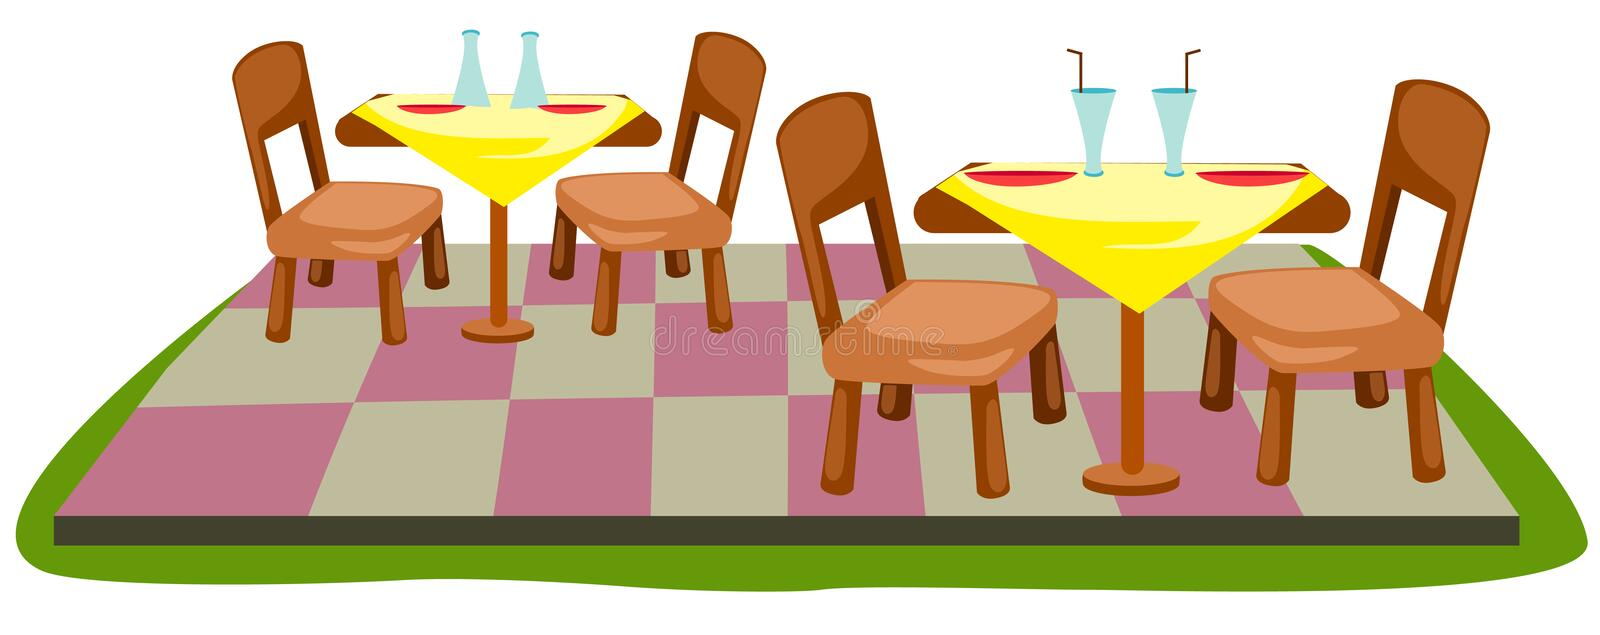 Table and chairs. Illustration of isolated table and chairs on white background stock illustration